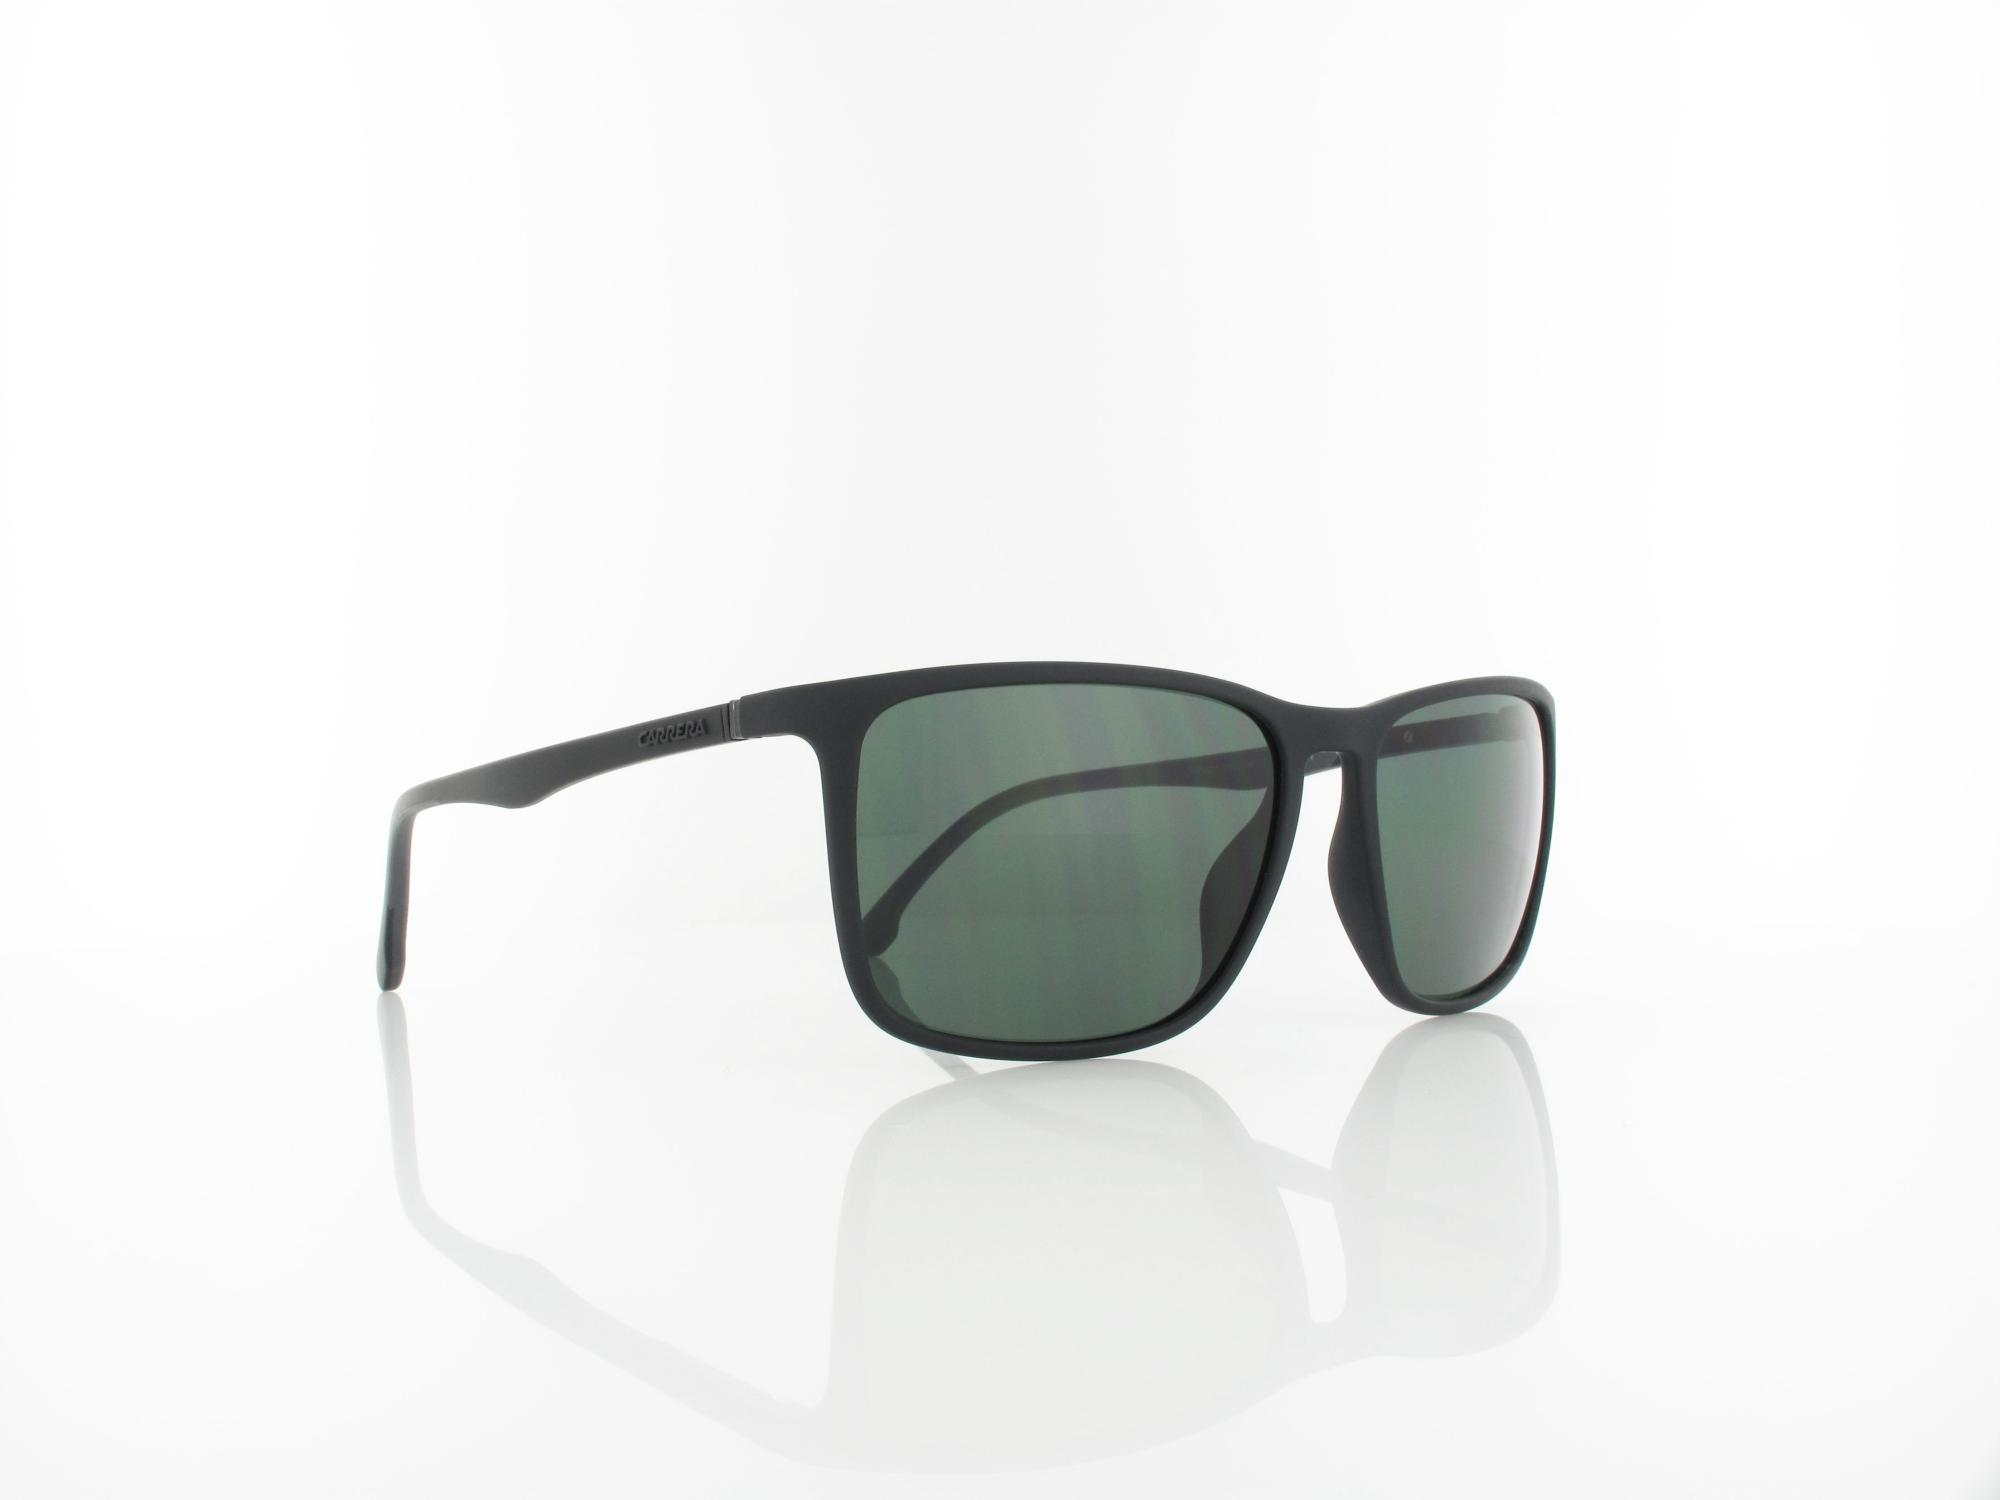 Carrera | CA 8031/S 003/QT 57 | matte black / green